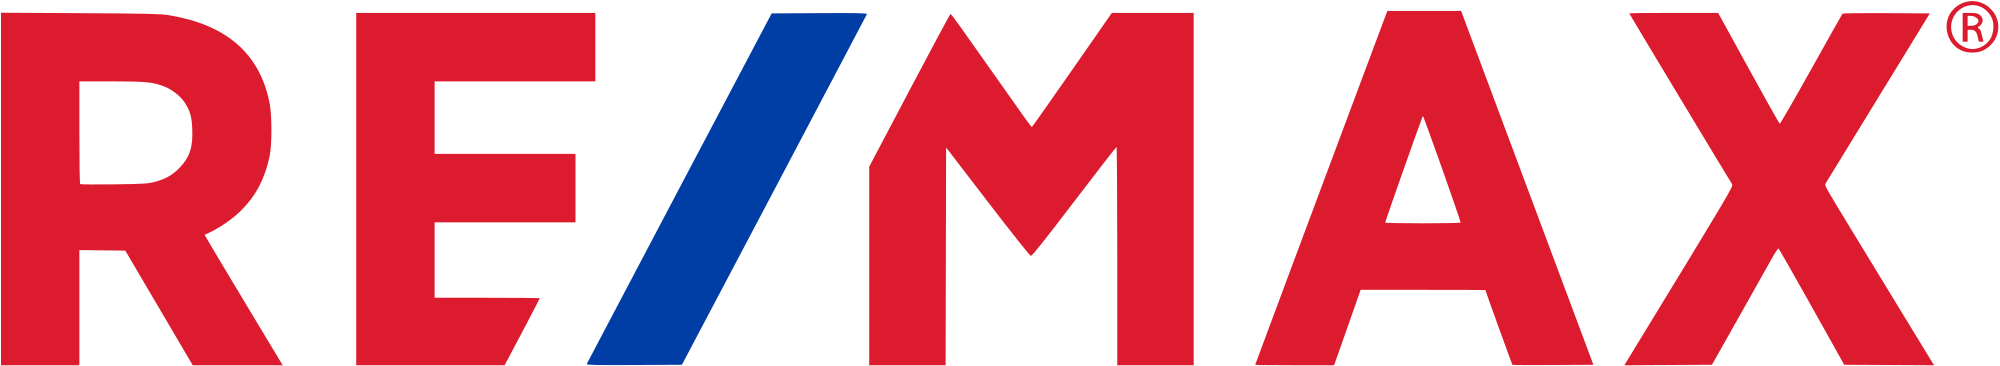 Remax logo png. File svg wikimedia commons